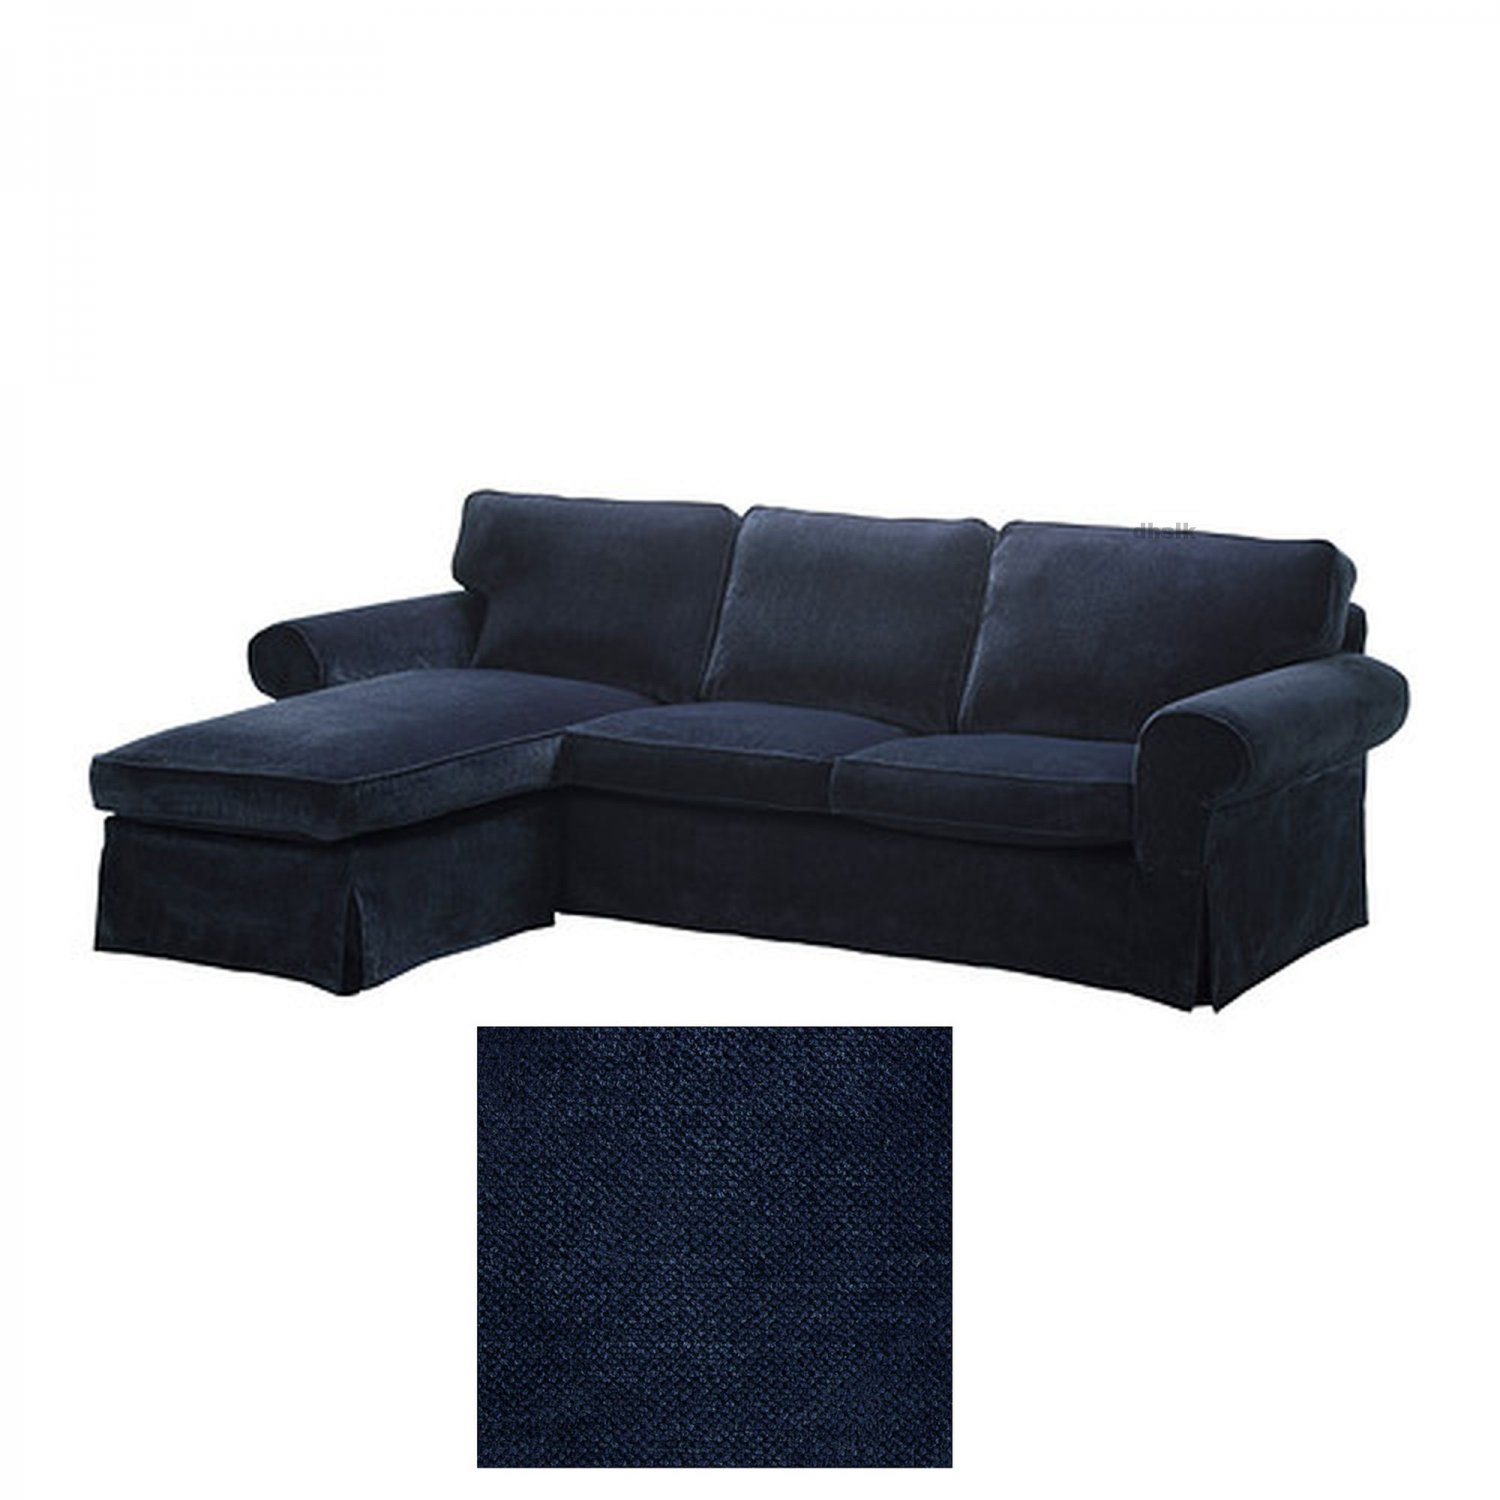 Ikea ektorp 2 seat loveseat sofa with chaise cover slipcover vellinge dark blue Cover for loveseat